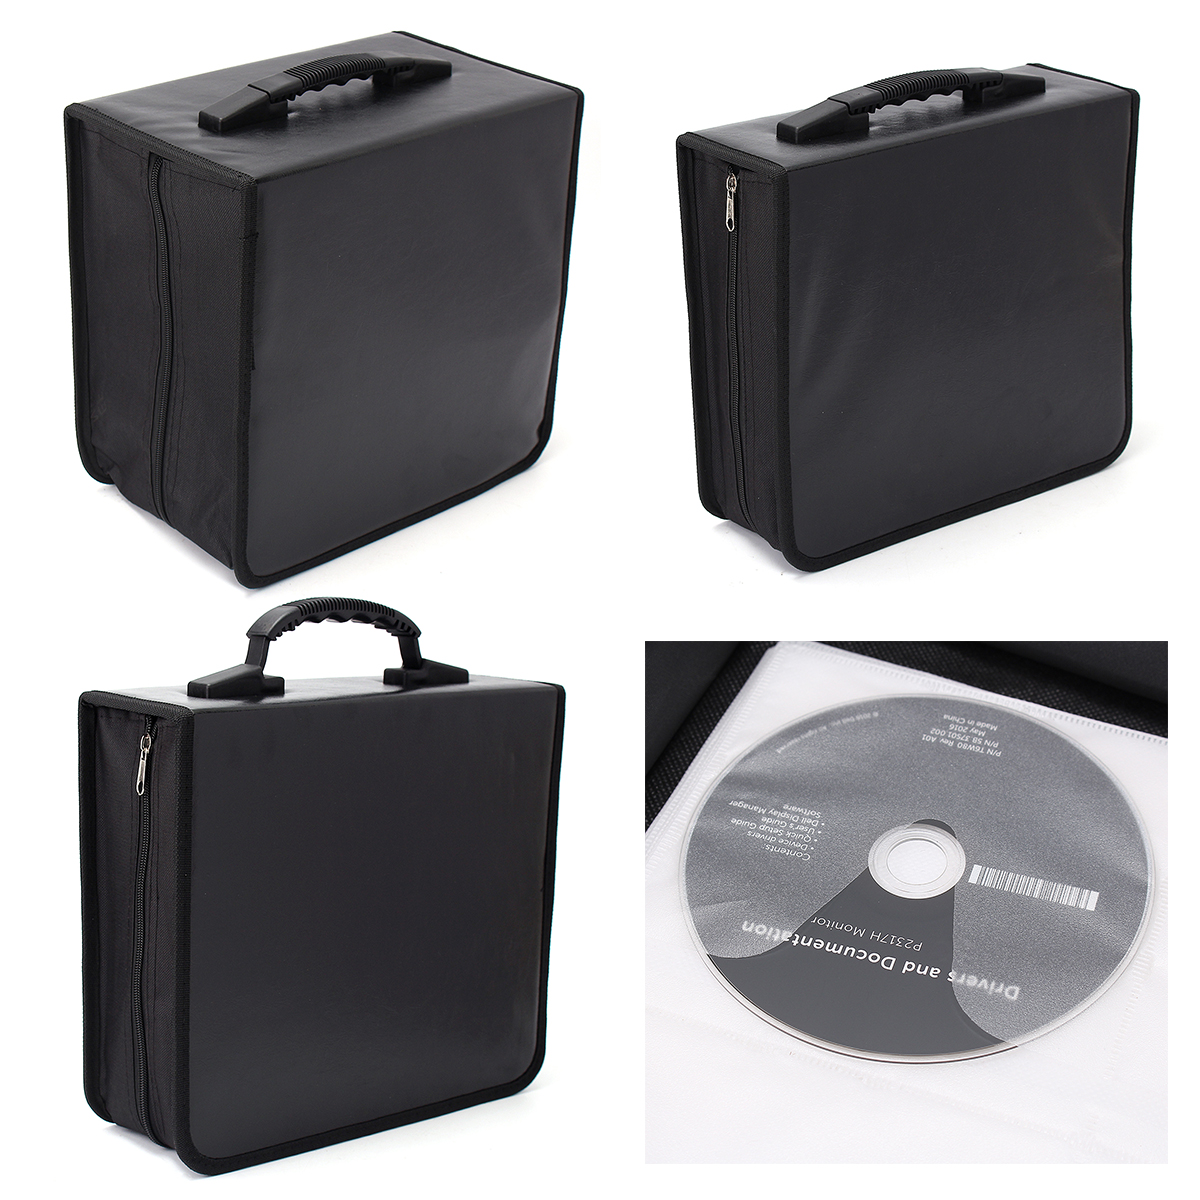 240/400/520 Disc CD DVD Portable Storage World Map Printed Holder Carry Durable Wallet Bag Wallet DJ Album Collect Storage 1pcs 40 disc cd dvd case storage holder carry case organizer sleeve wallet cover bag box cd dvd holder dj storage cover